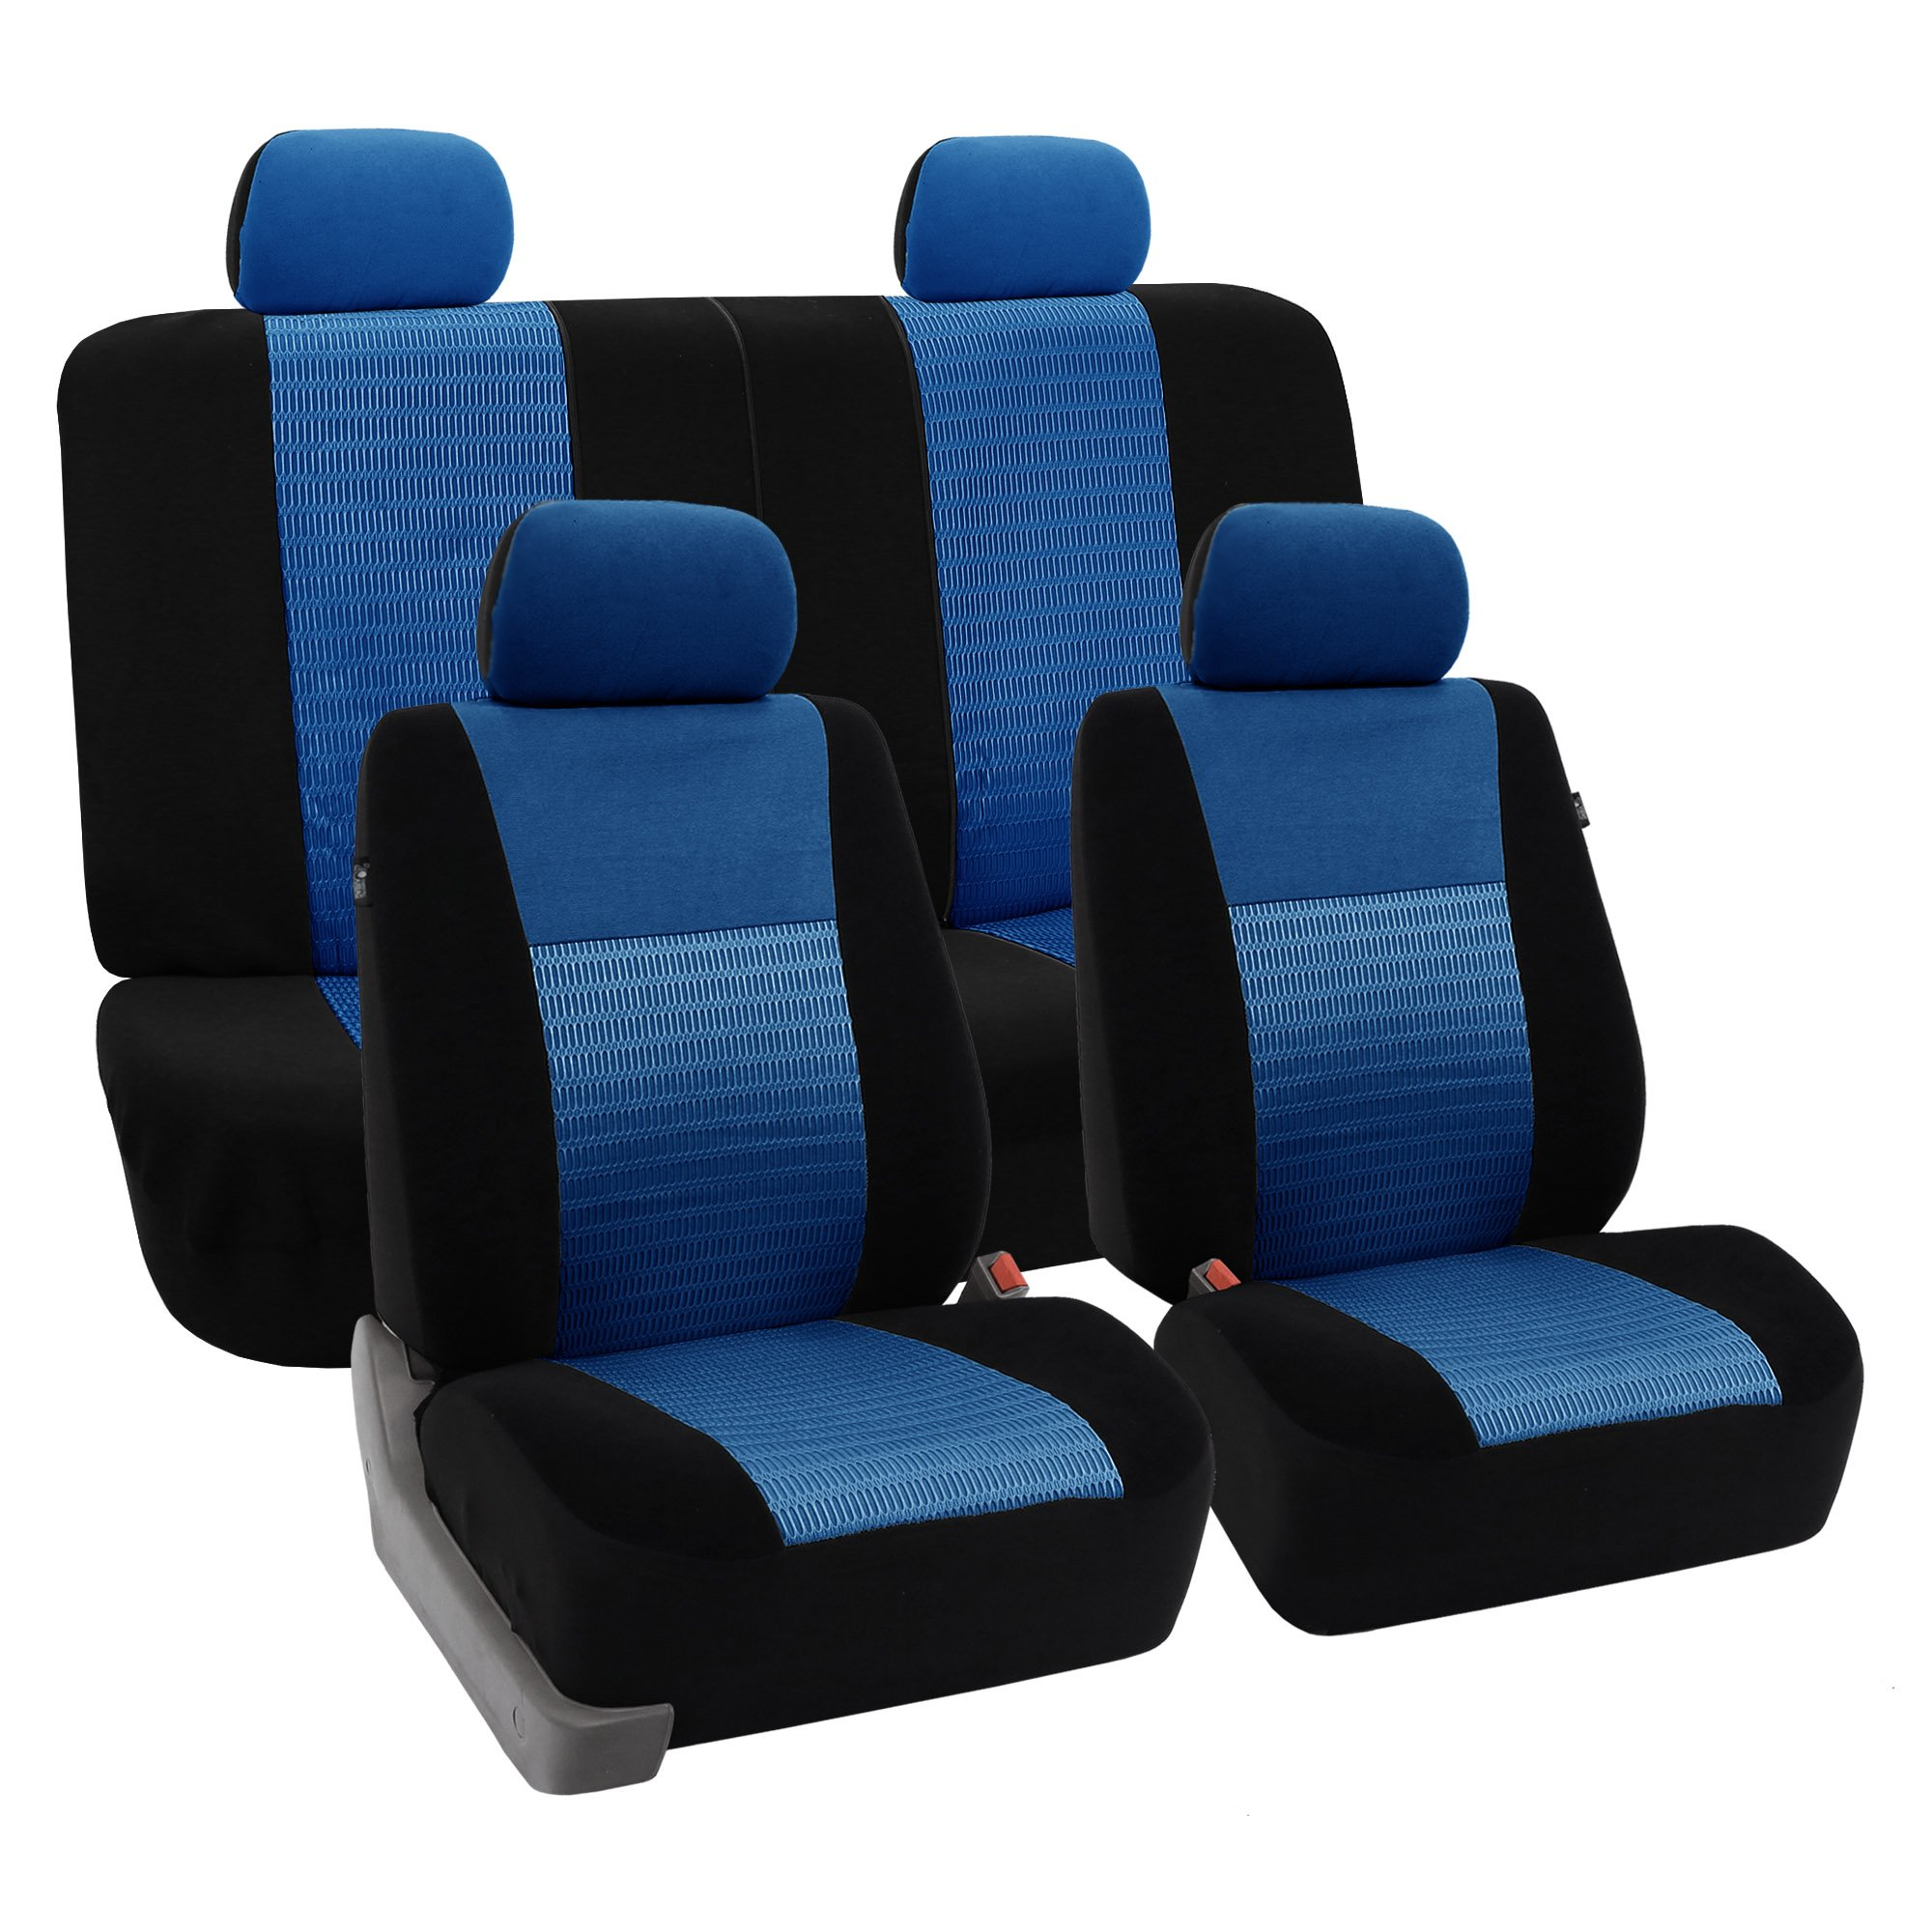 FH Group FB060115 Trendy Elegance Full Set Car Seat Covers, Airbag Compatible & Split Bench, Blue/Black Color - Fit Most Car, Truck, SUV, or Van by FH Group